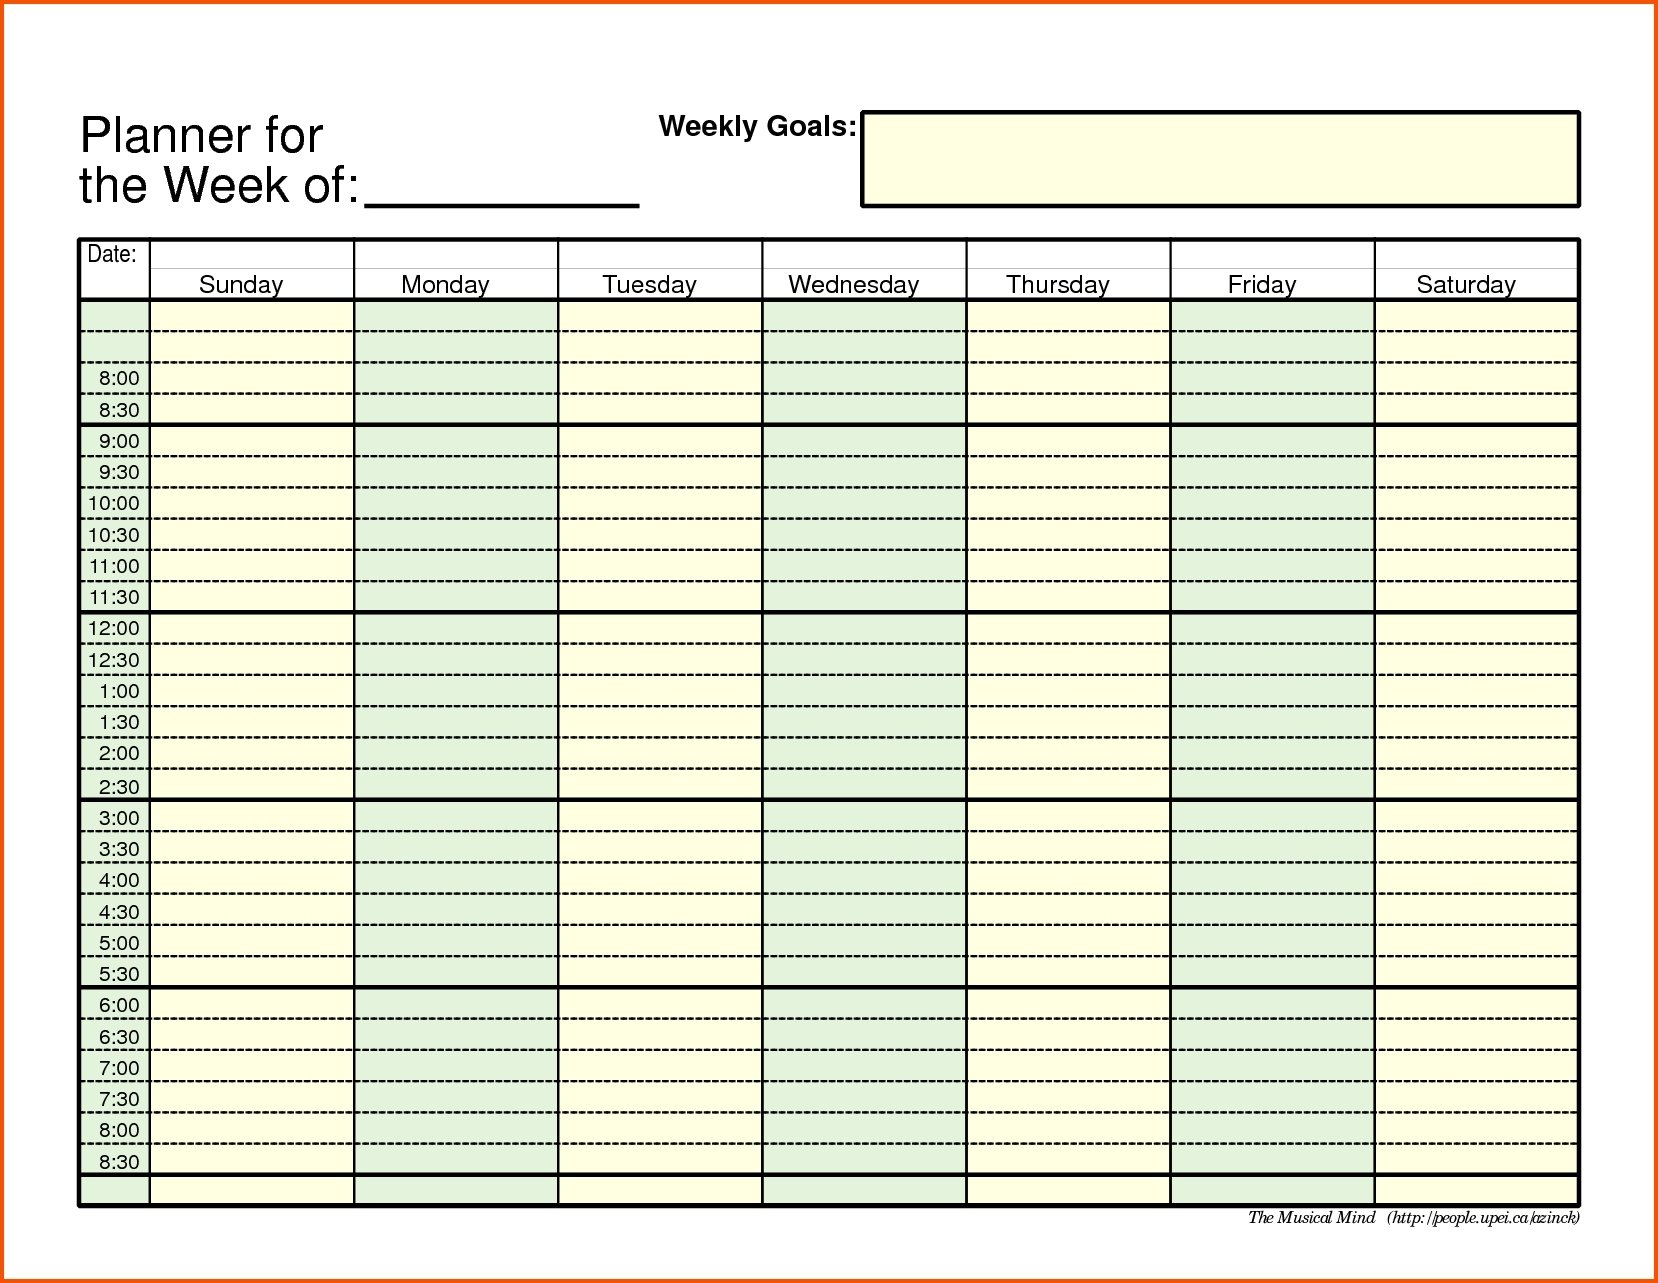 Weekly Schedule With Time Slots – Calendar Inspiration Design Free Weekly Planner With Time Slots